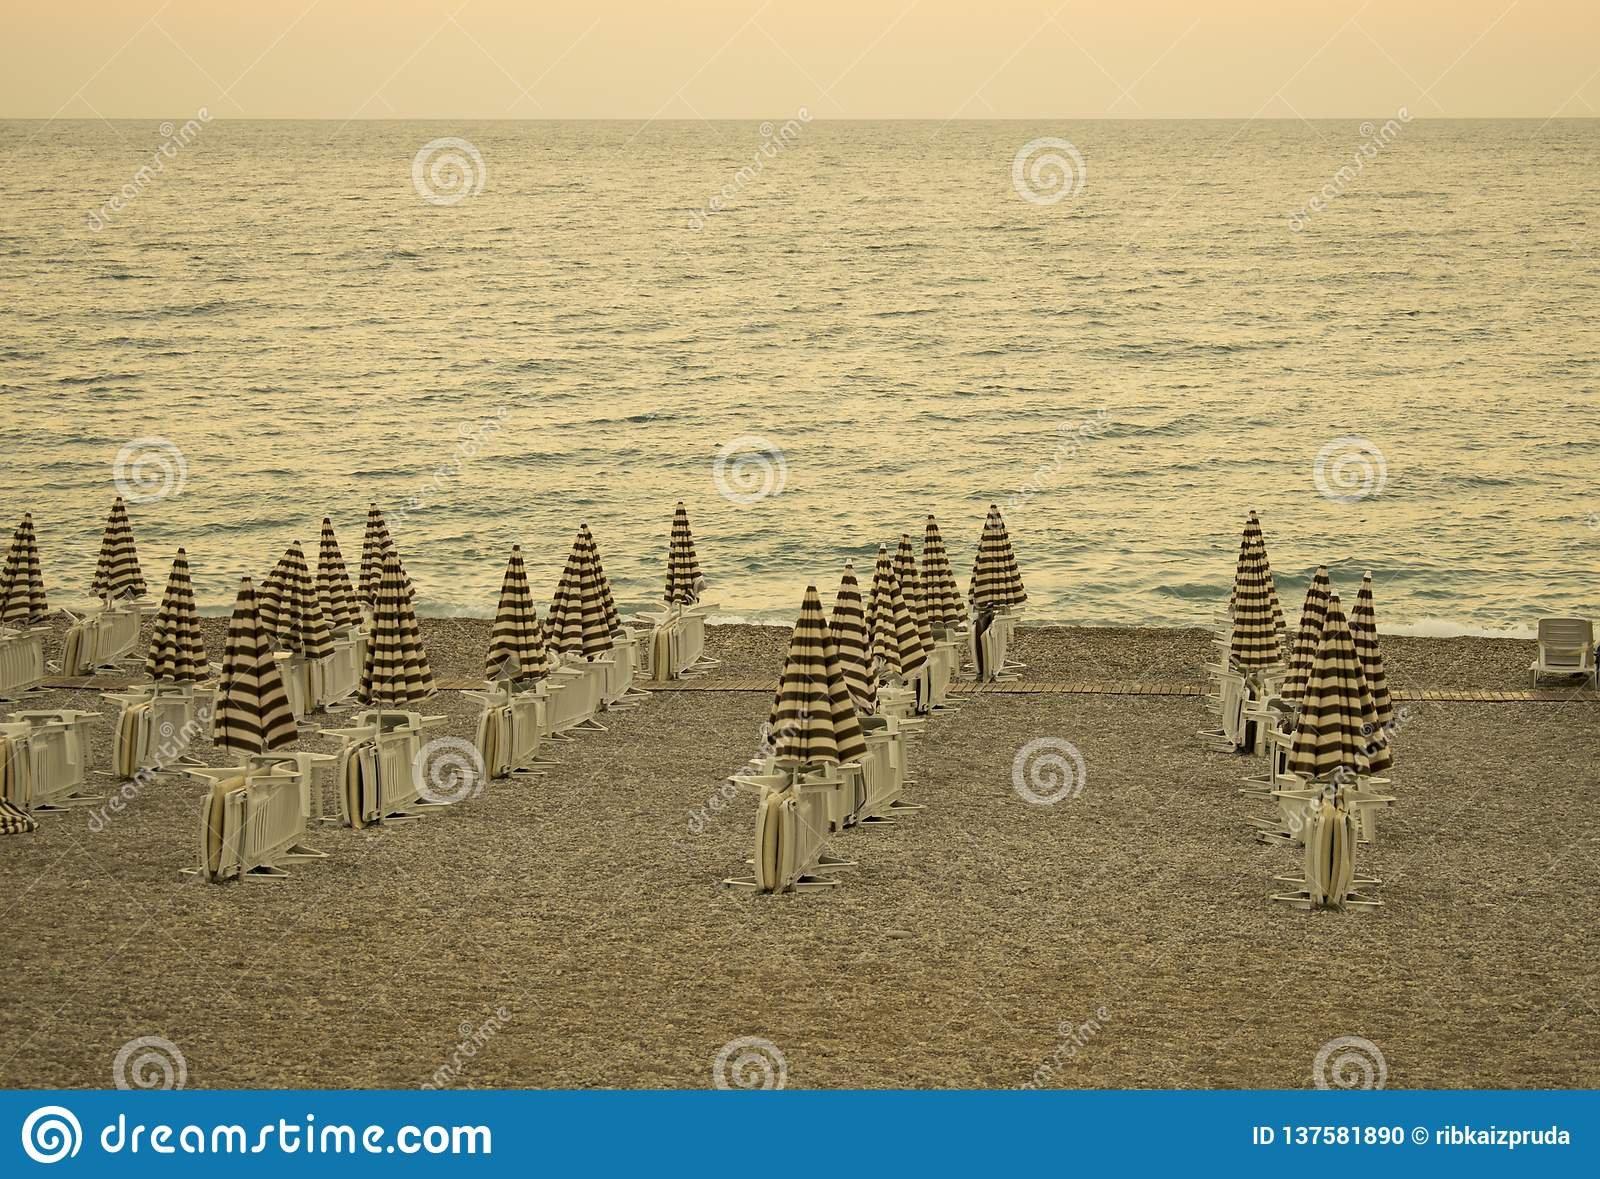 Evening empty beach with chairs and striped umbrellas. Resort landscape. Vintage retro filter